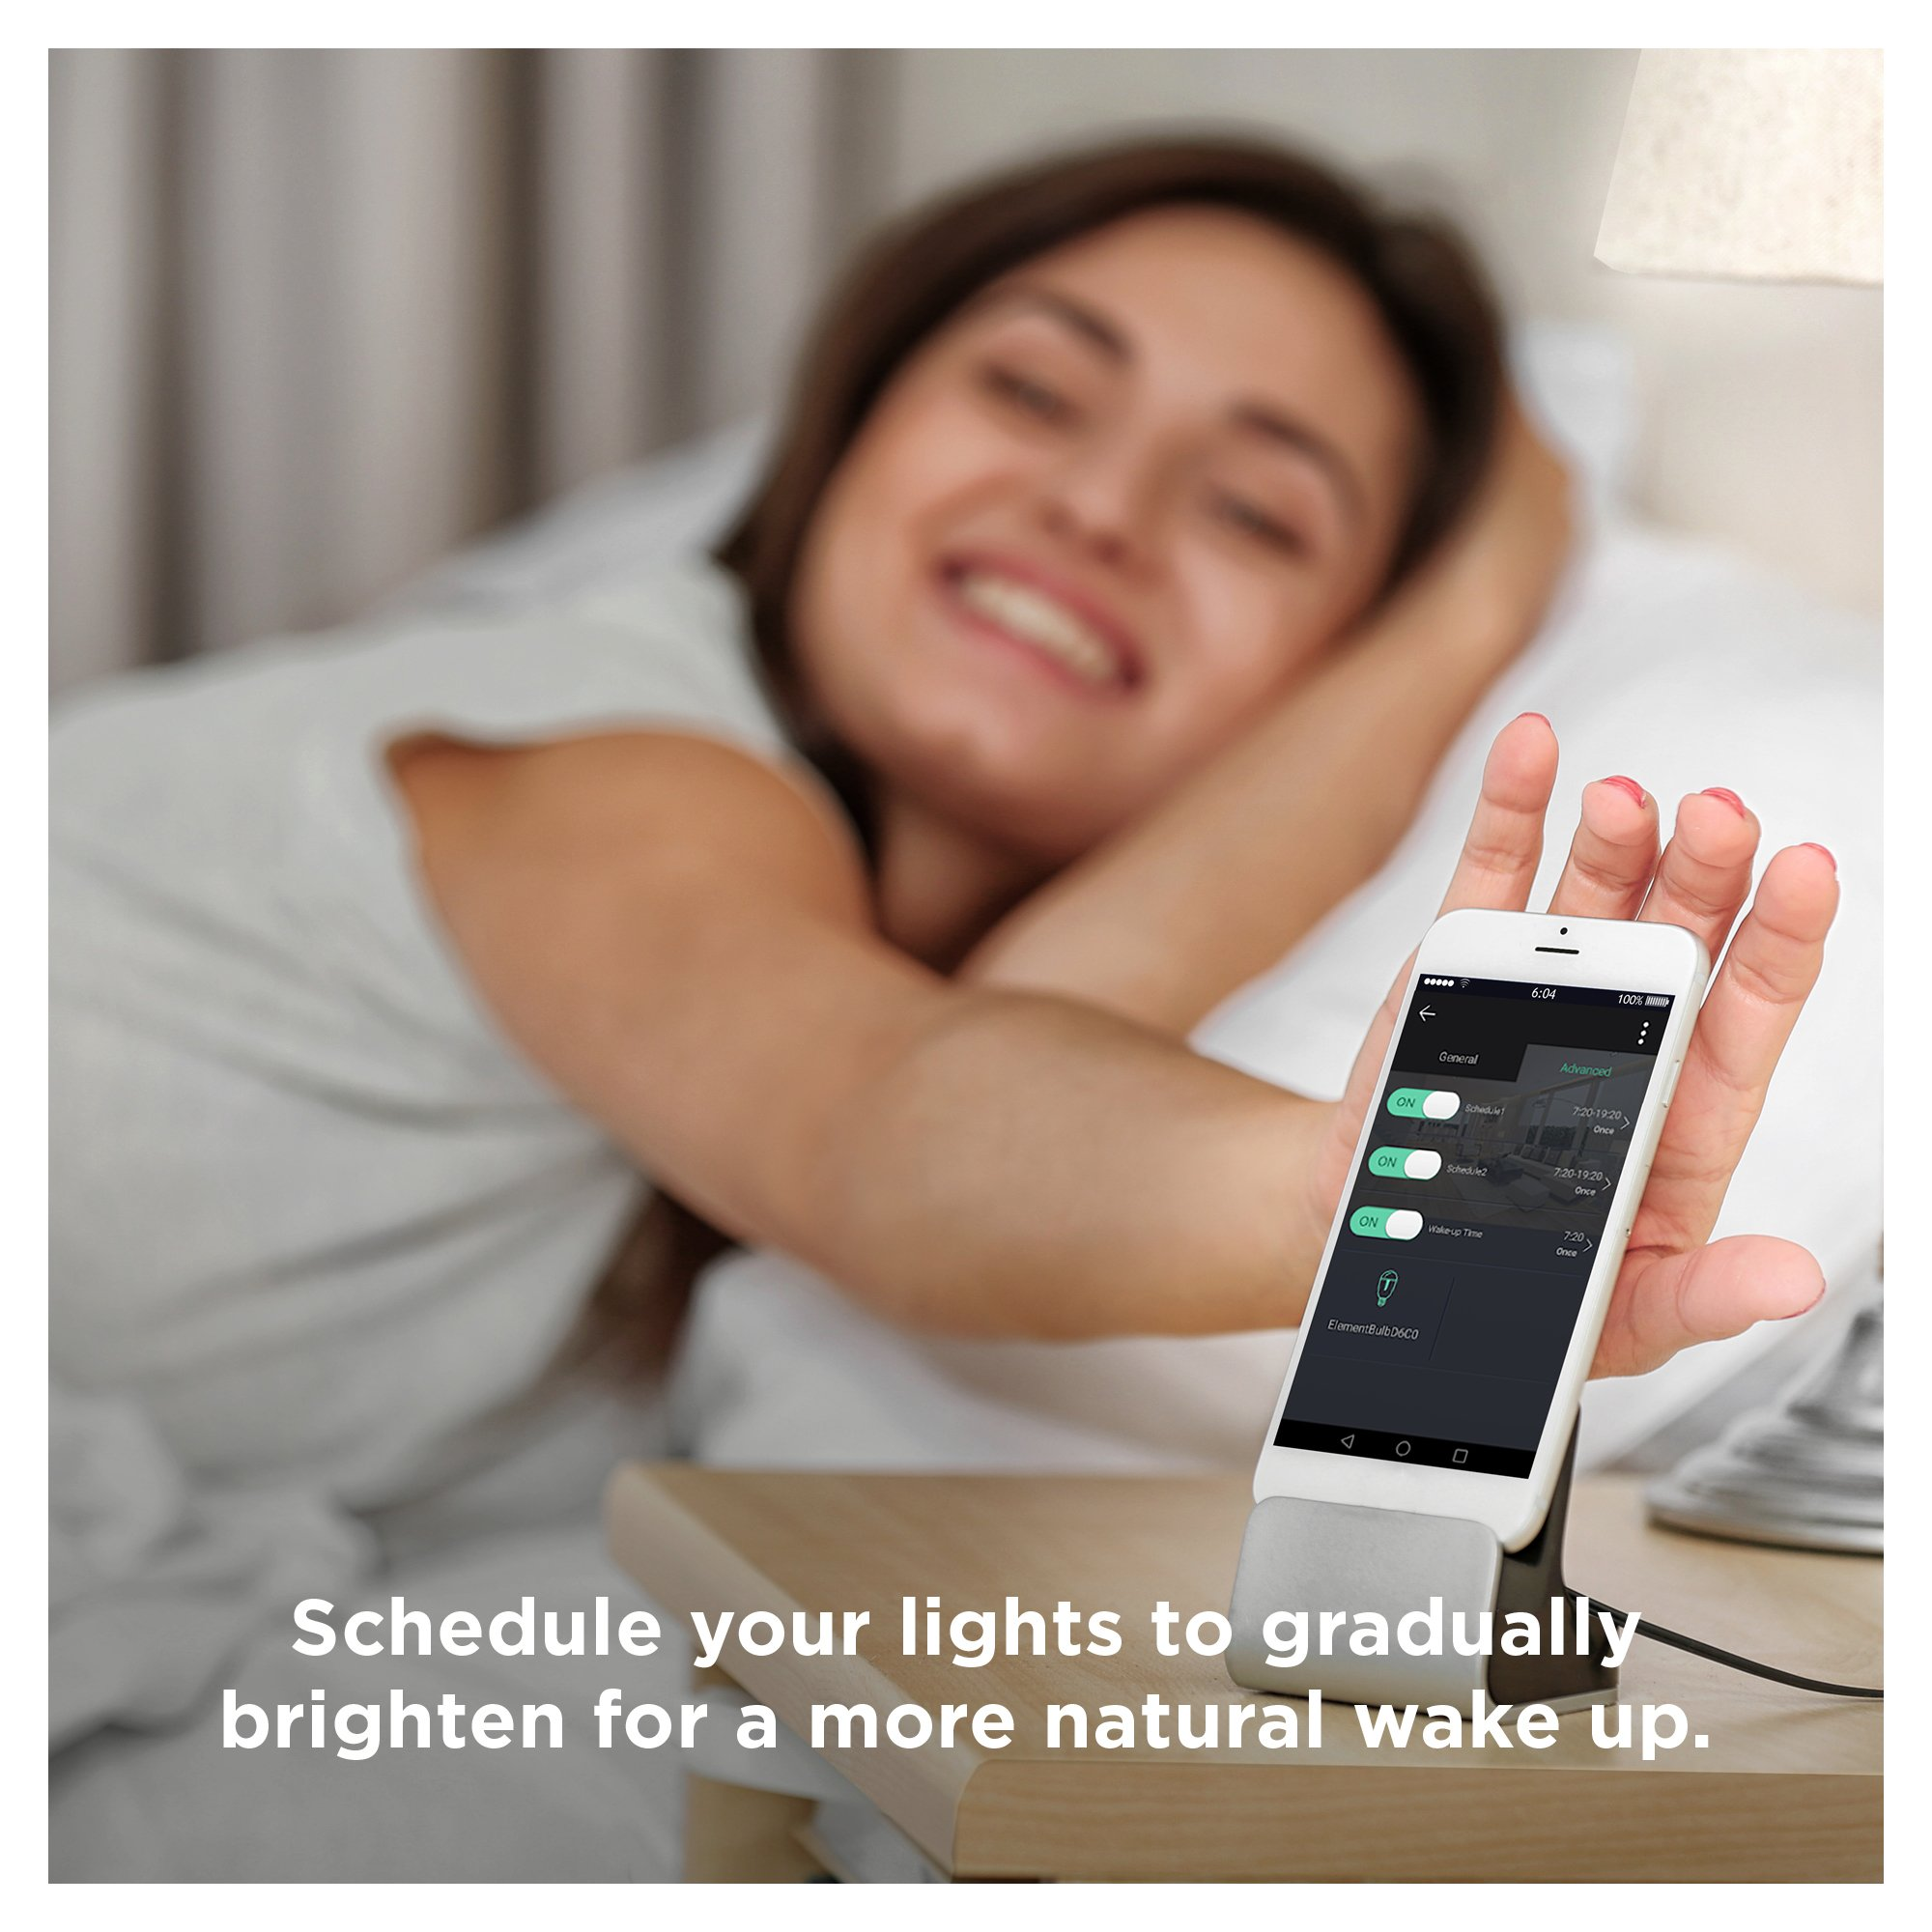 Sengled Element Plus Smart LED Light Bulb (Hub Required), A19 Dimmable LED Light Tunable White 2700-6500K 60W Equivalent, Works with Alexa/Echo Plus/SmartThings/Google Assistant, 1 Pack by Sengled (Image #6)